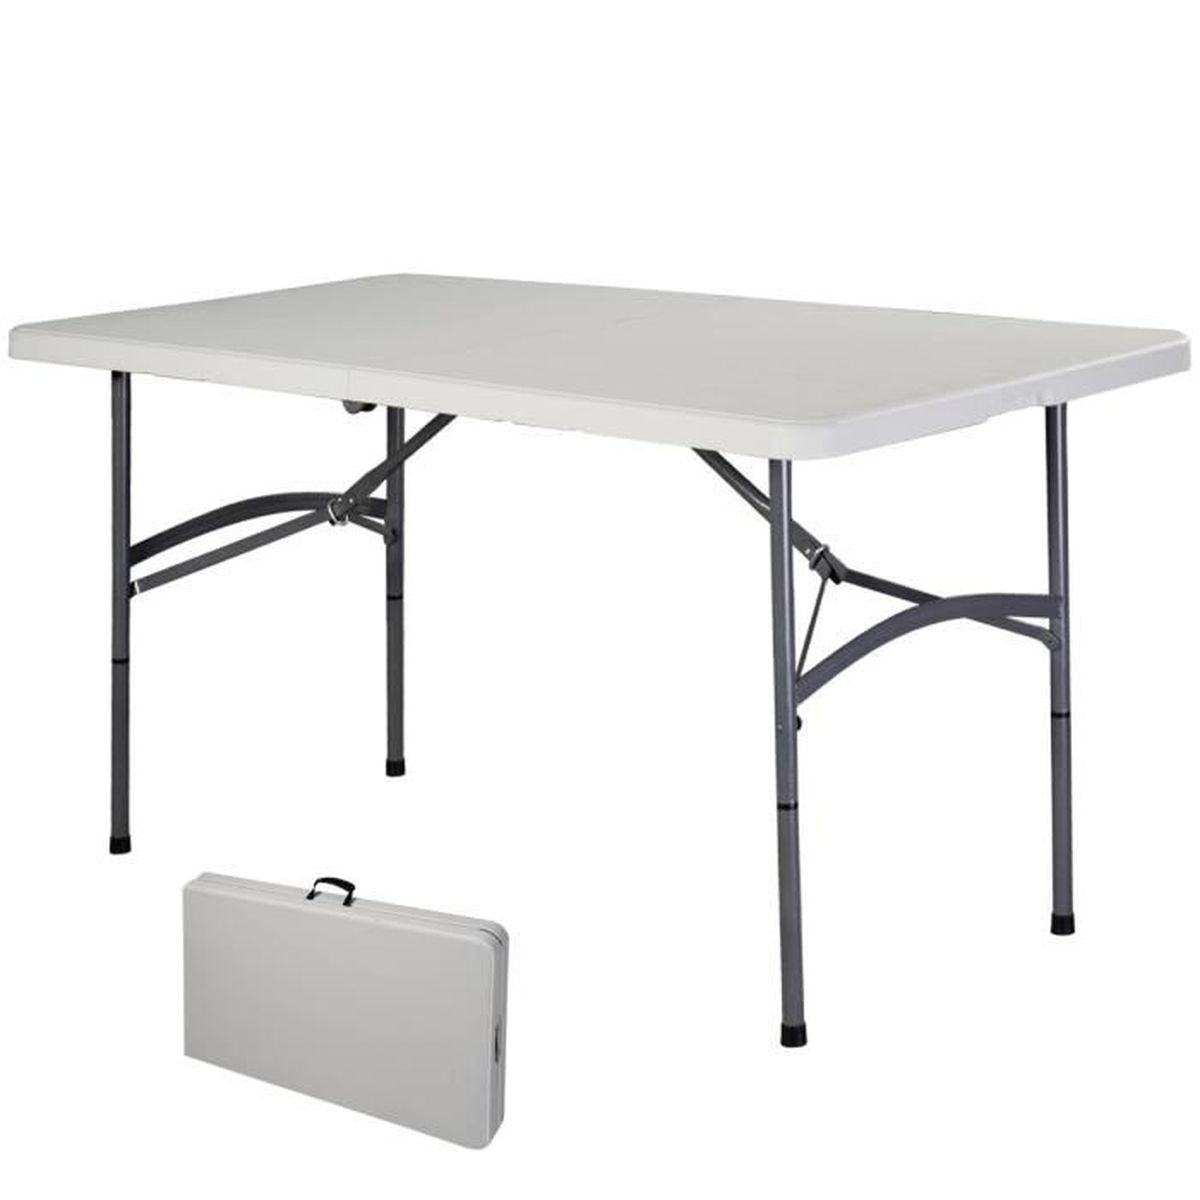 Table pliante portable table de camping valise jardin - Table de bridge pliante ...